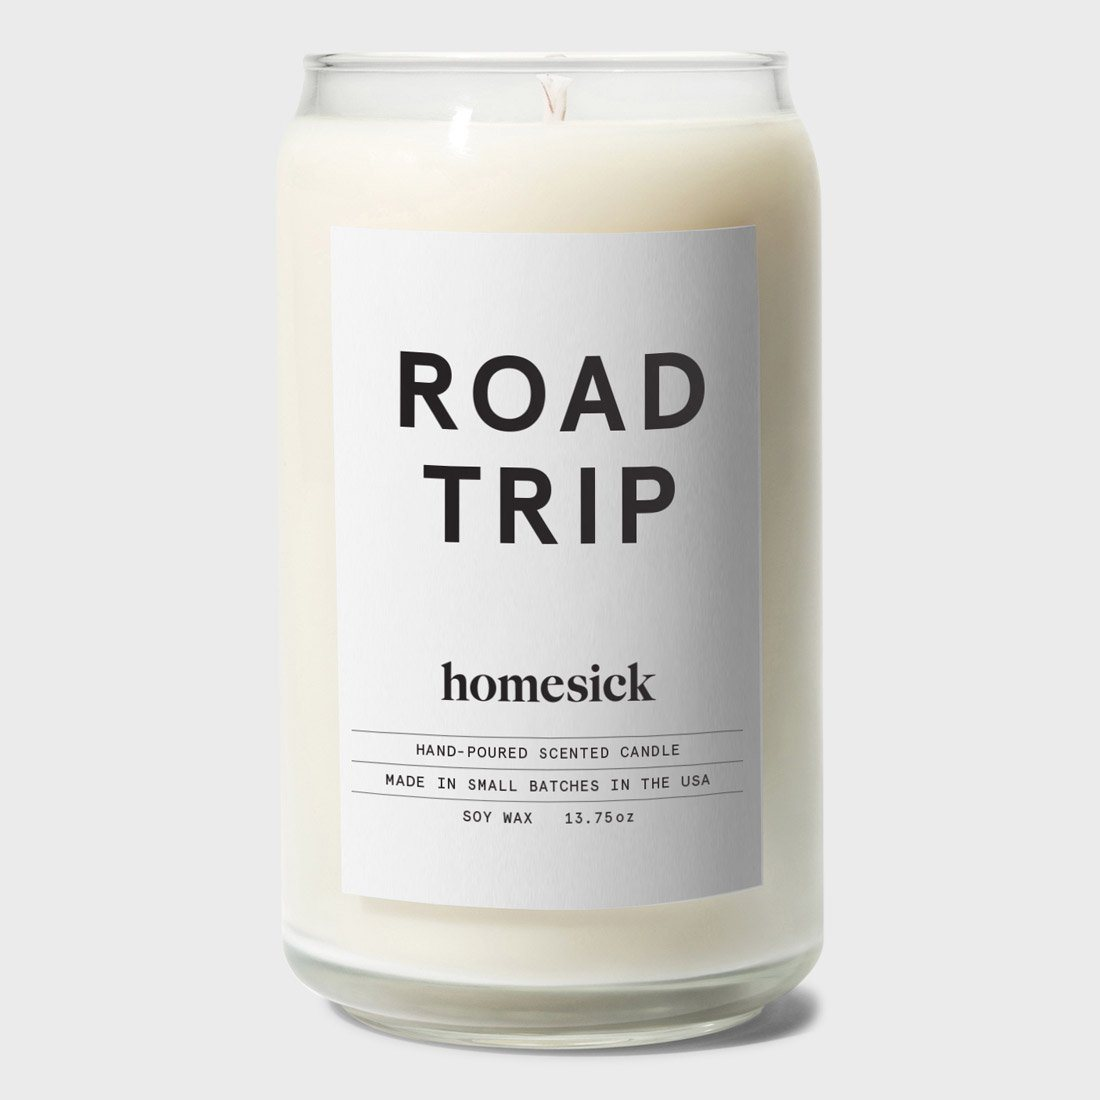 Homesick Road Trip Candle